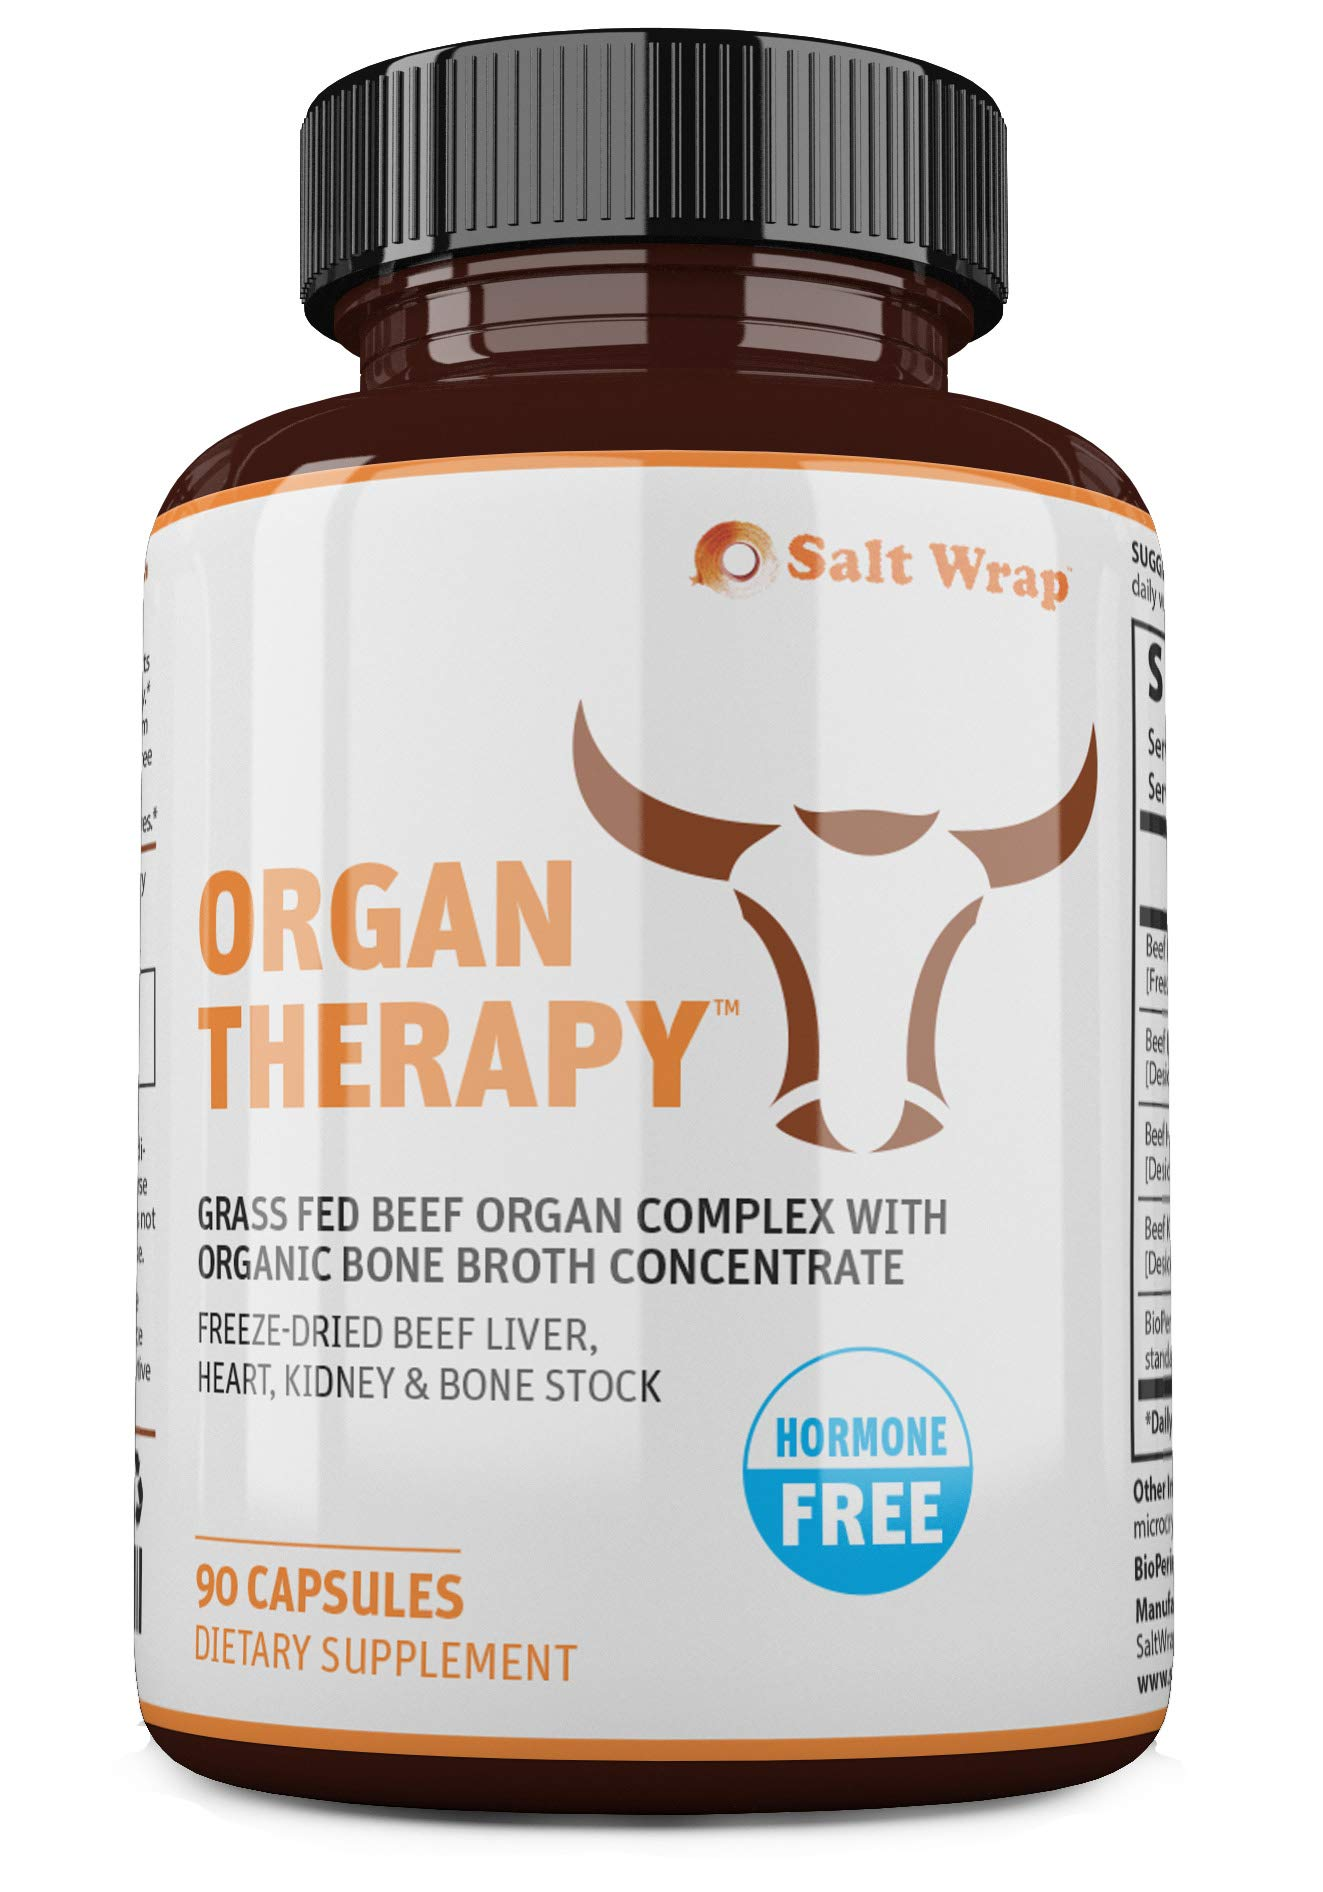 Organ Therapy Grass Fed Beef Organ Meat Complex Supplement with Organic Bone Broth Concentrate (Beef Liver, Heart, Kidney and Bone Broth Capsules with BioPerine), 90 Capsules by SaltWrap